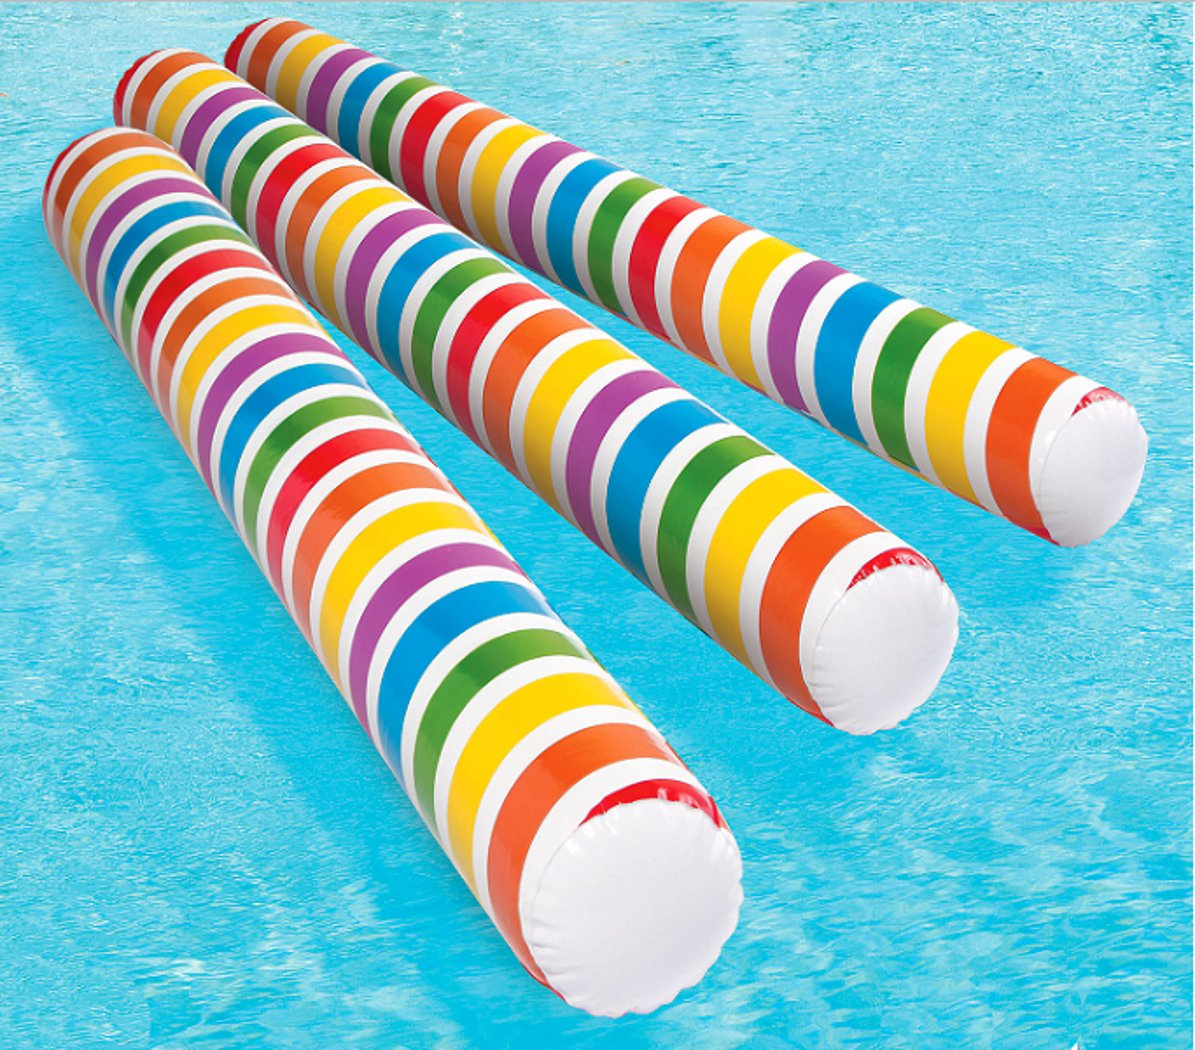 Inflatable Rainbow Glow-in-the-Dark Pool Noodles and Inflatables Hand Air Pump 4 Piece Bundle